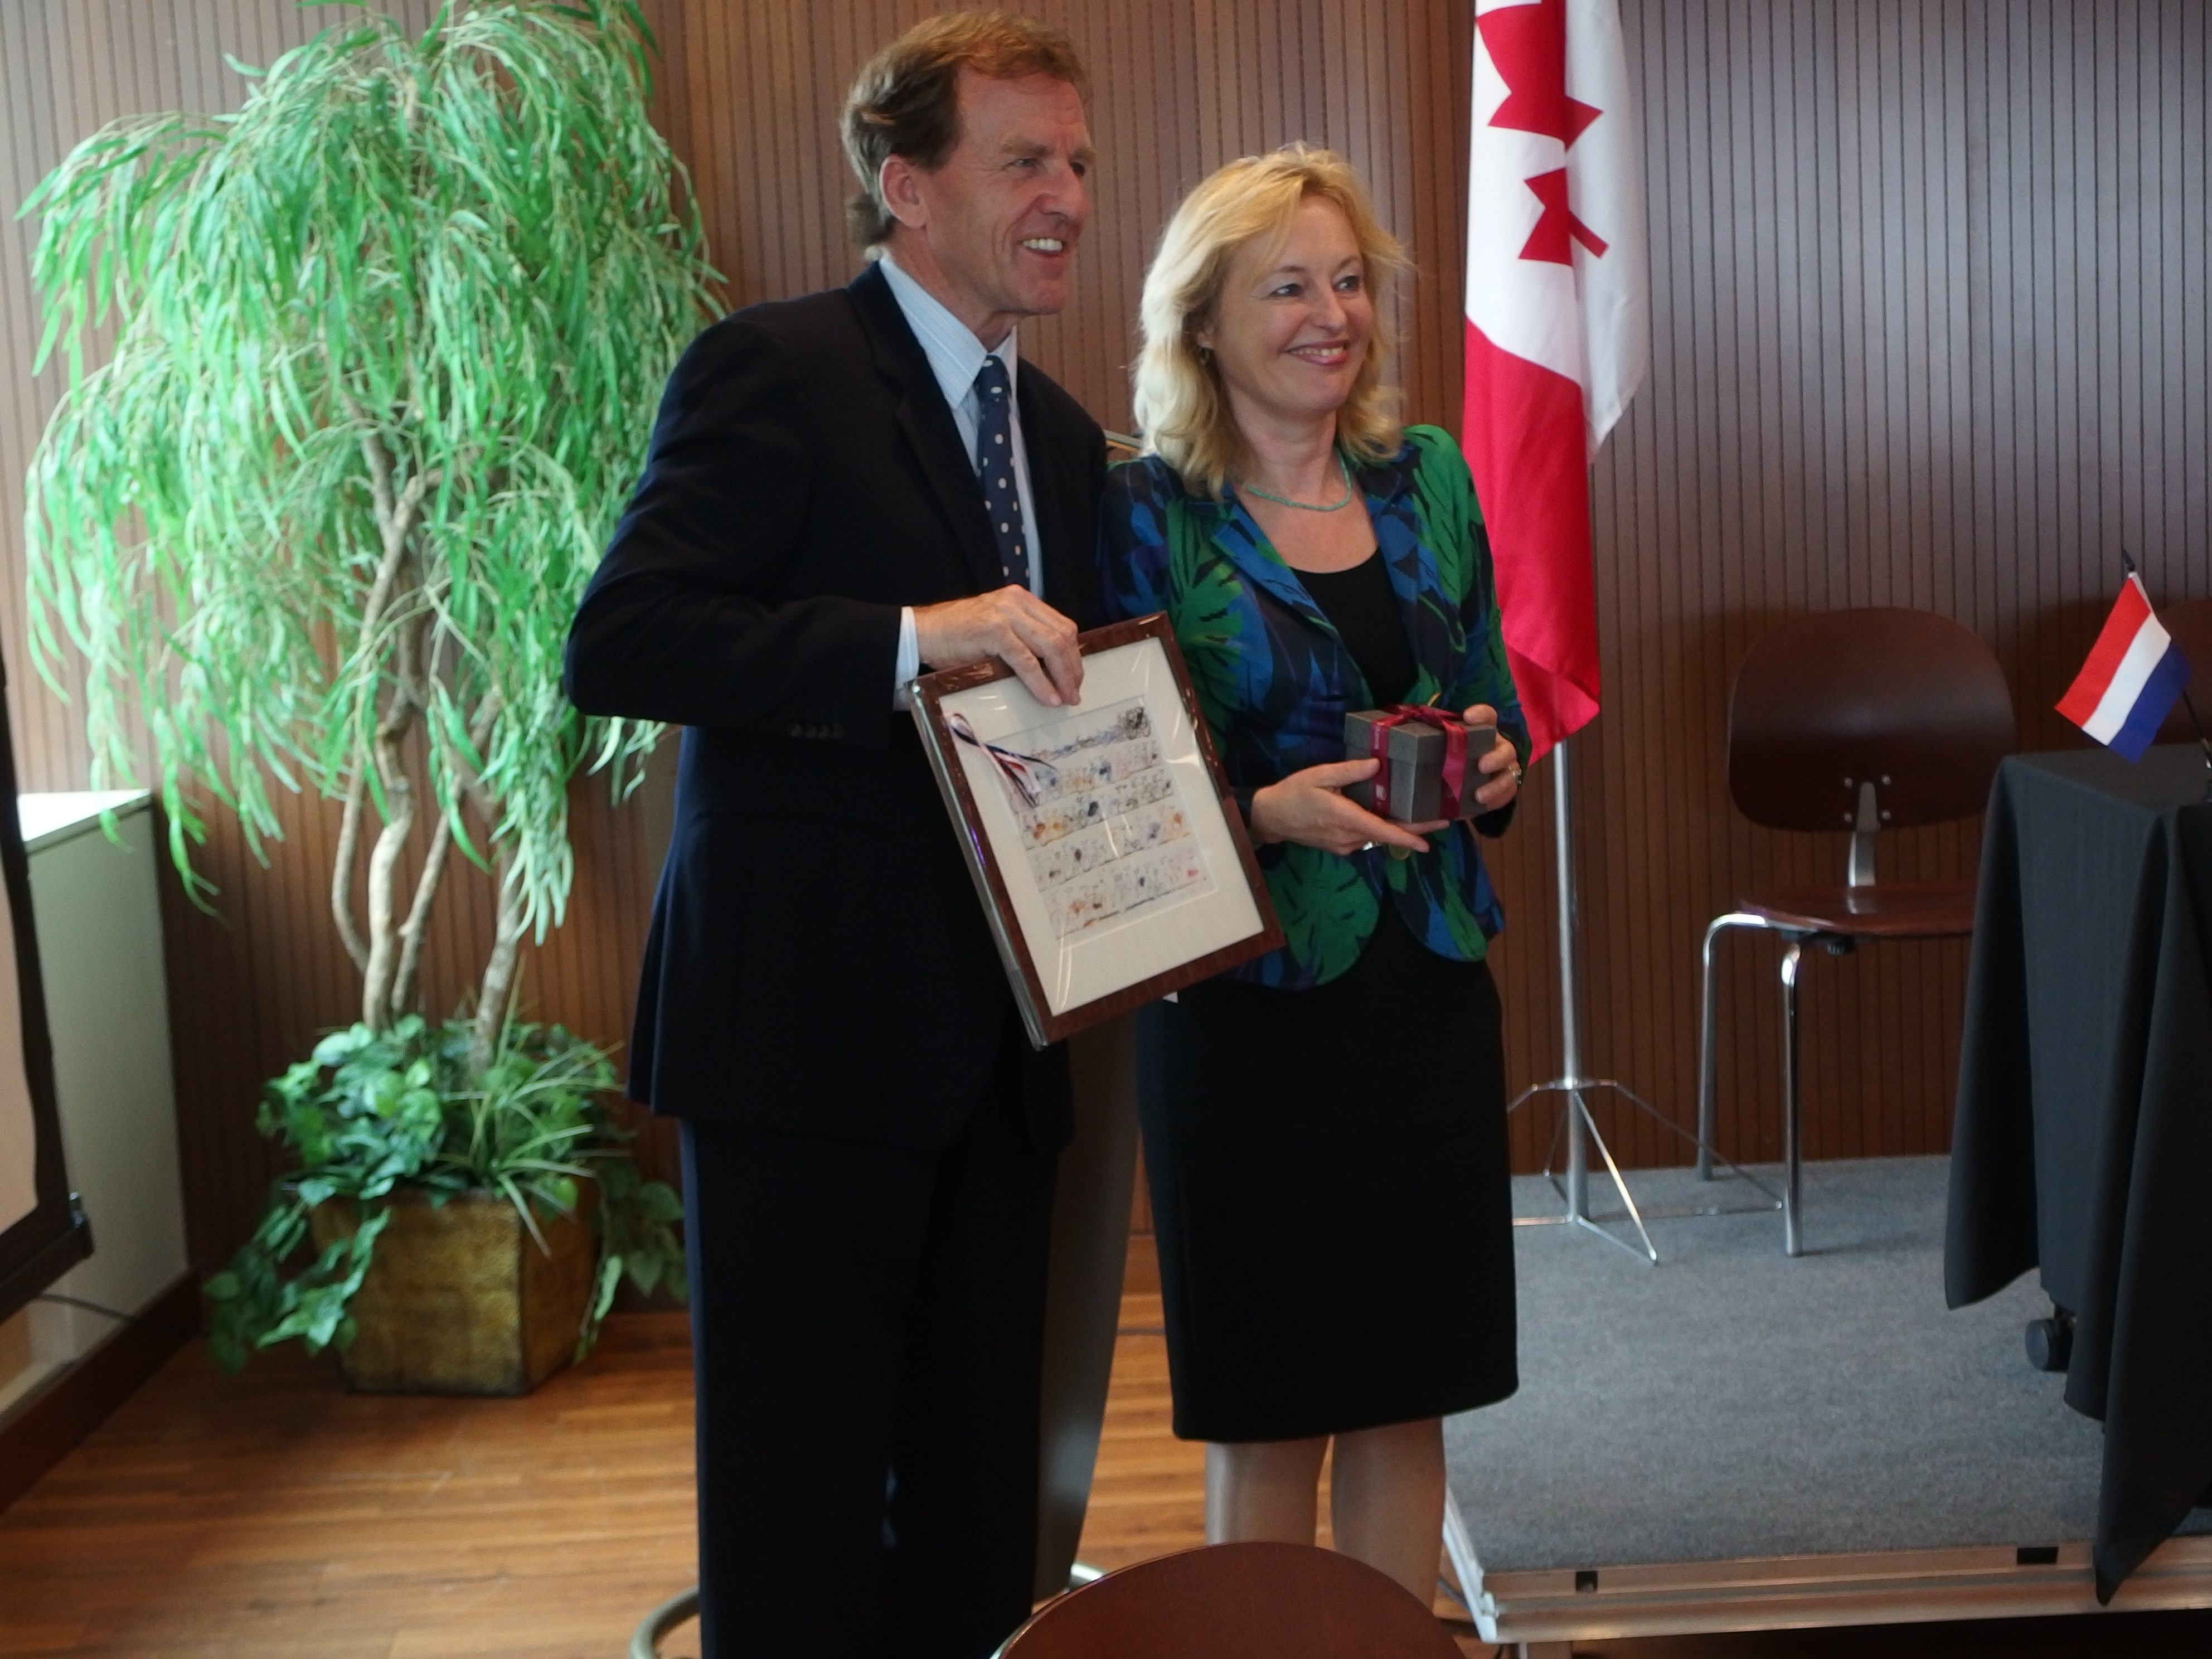 University of Ottawa president Allan Rock and the minister for education culture and science Jet Bussemaker